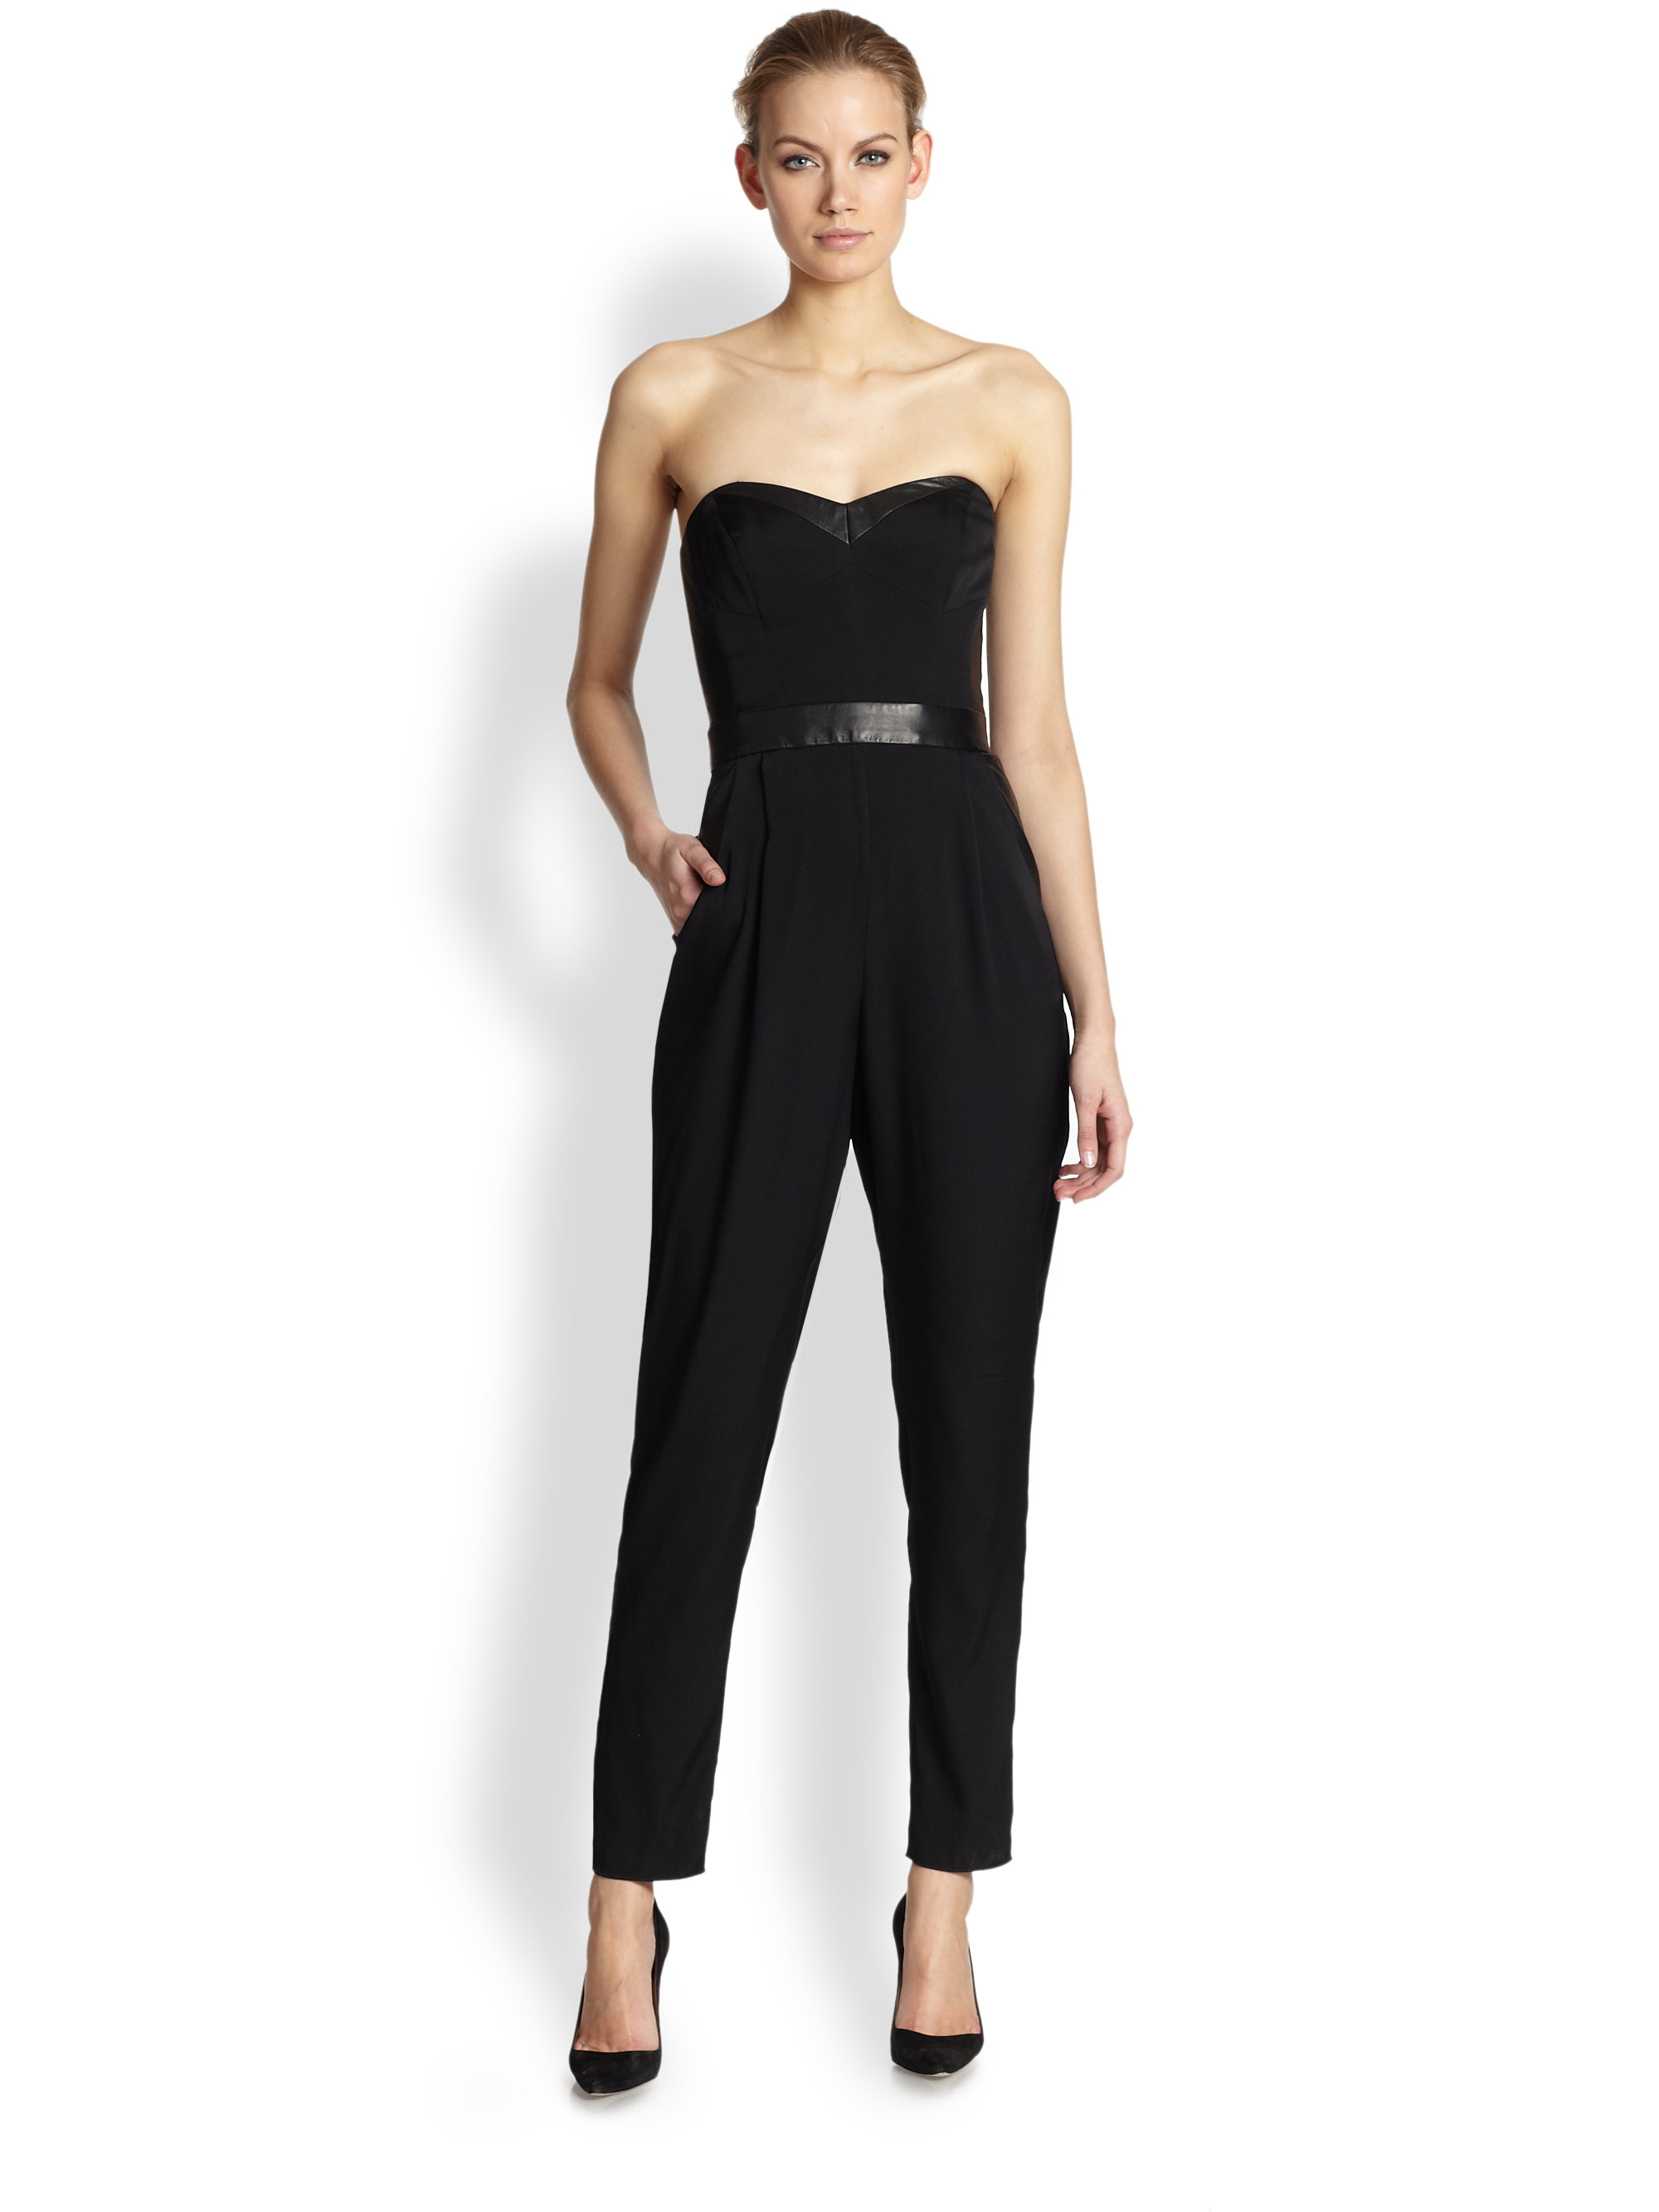 Shop for rompers at New York & Company. Choose from our casual and work collections of jumpsuits for women and find a fashionable look today.